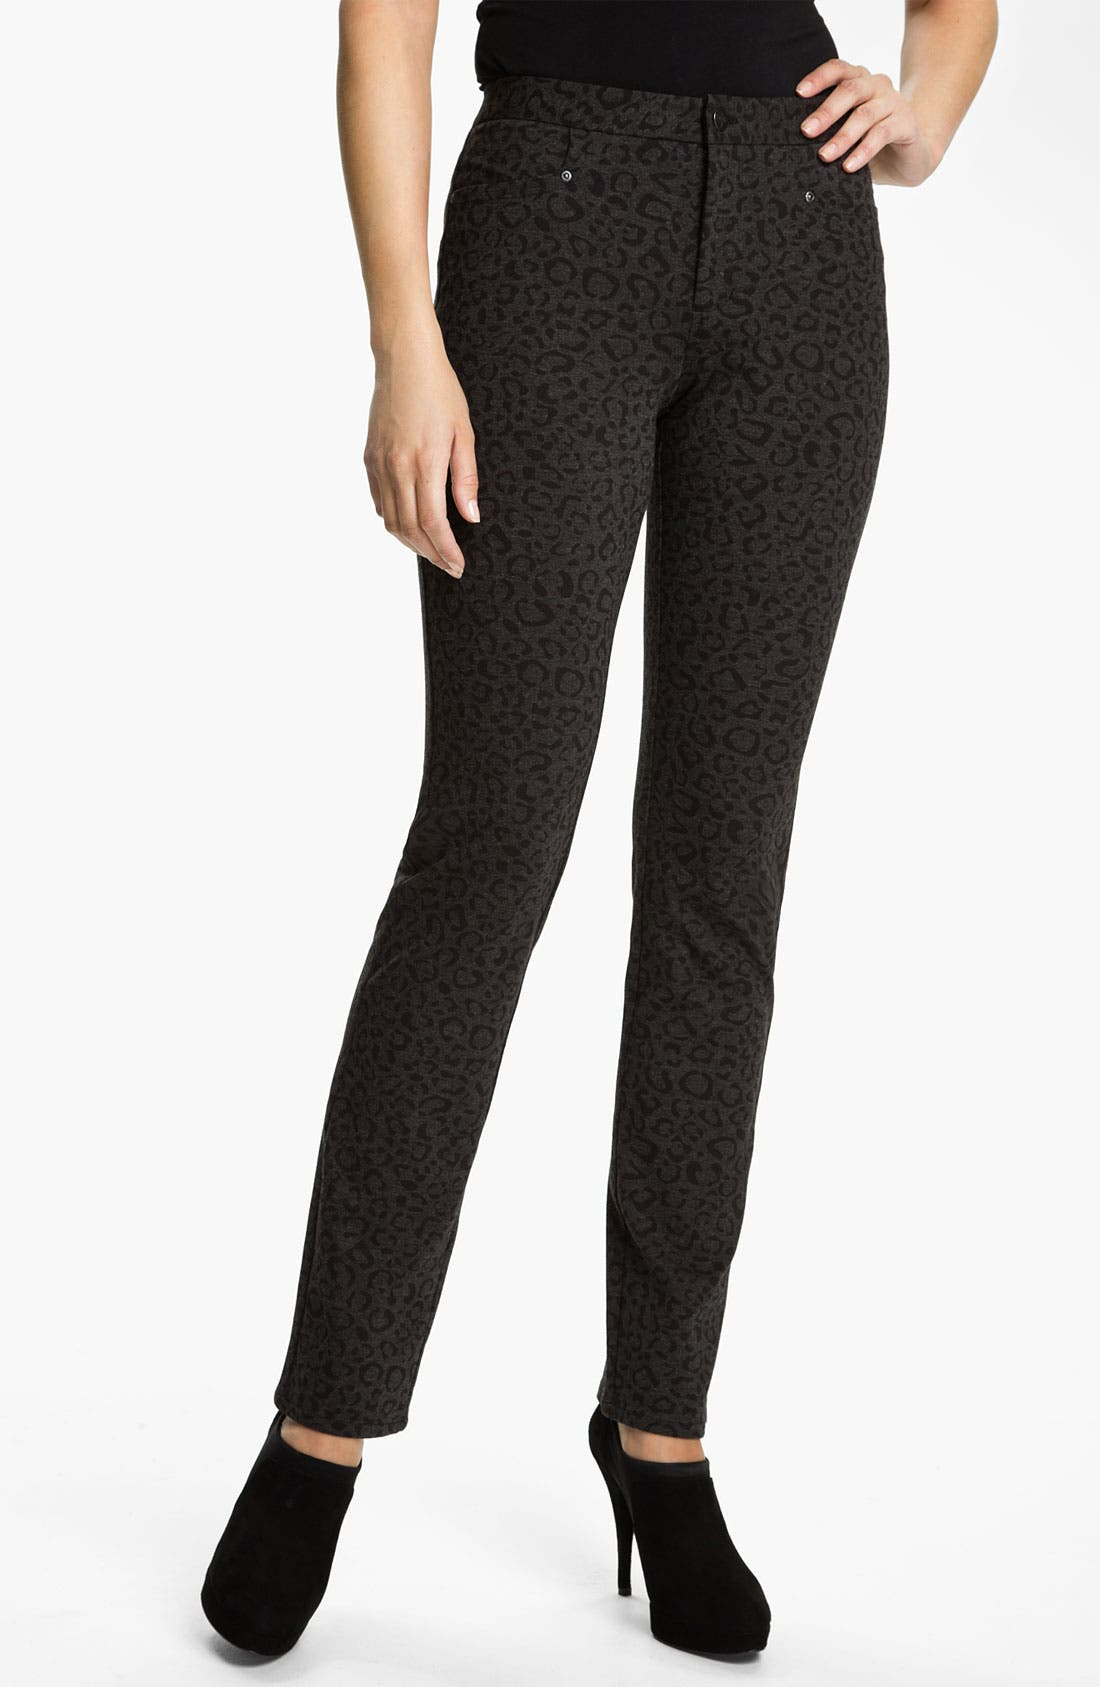 Alternate Image 1 Selected - NYDJ 'Nancy' Skinny Animal Print Knit Pants